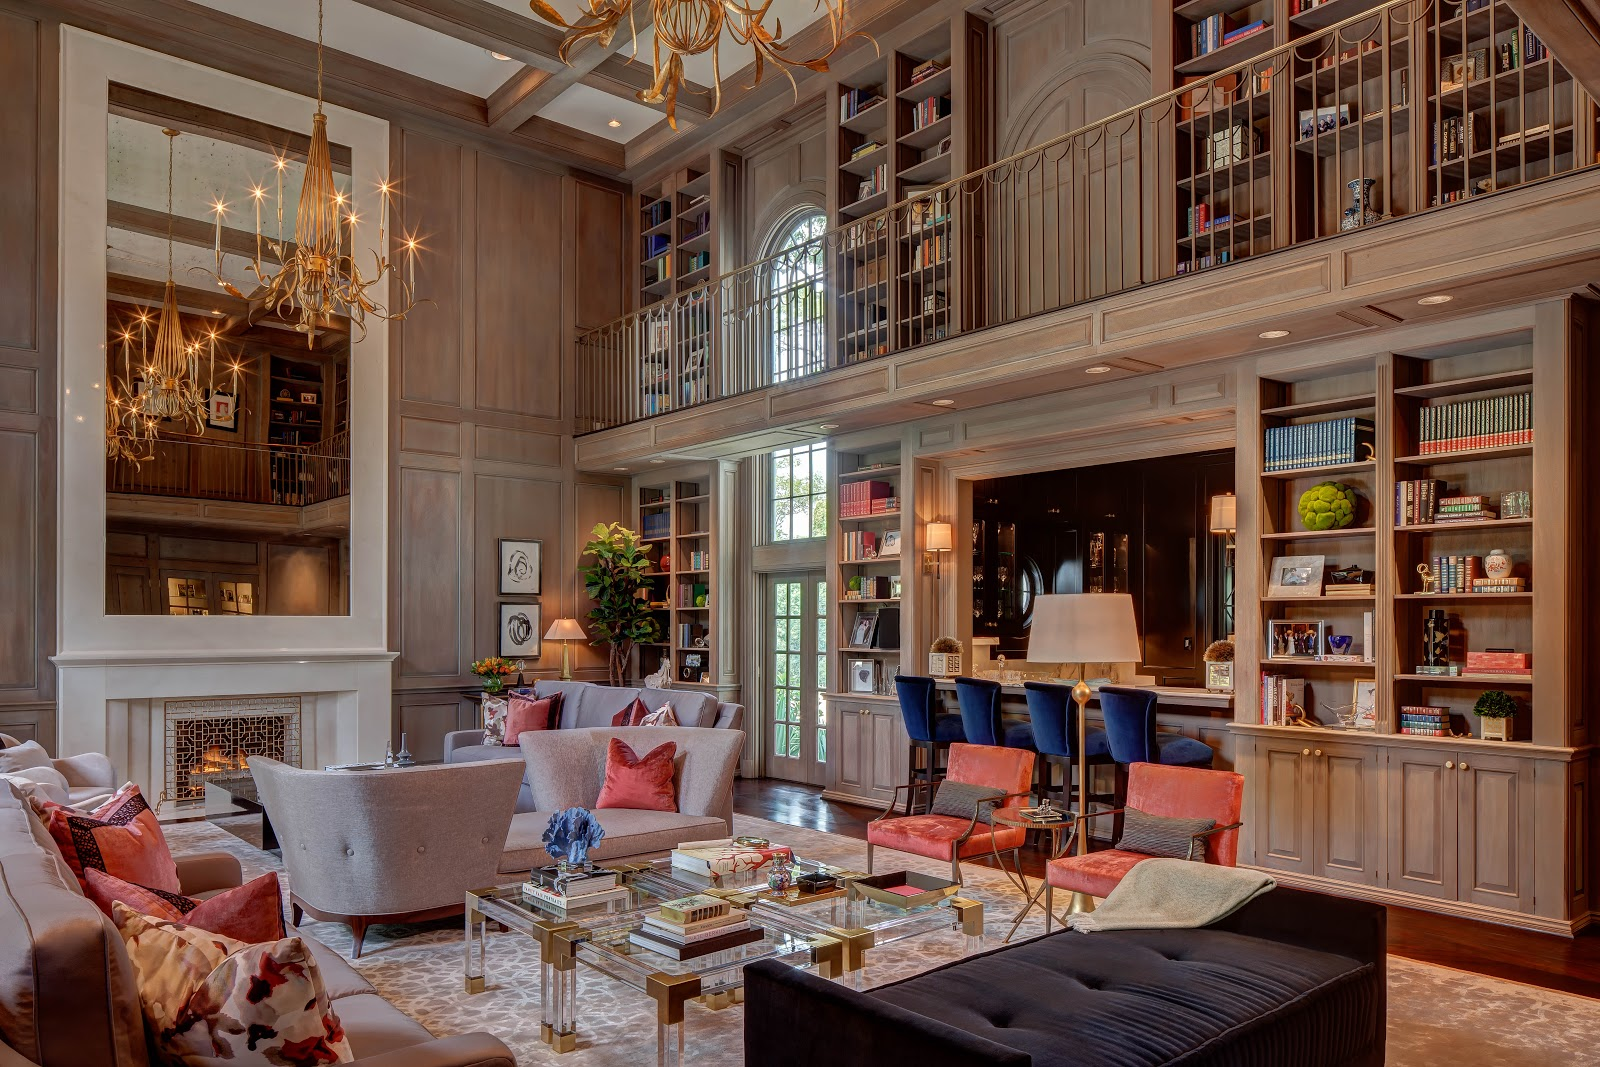 Grand paneled library with gold chandeliers - Laura U Interior Design